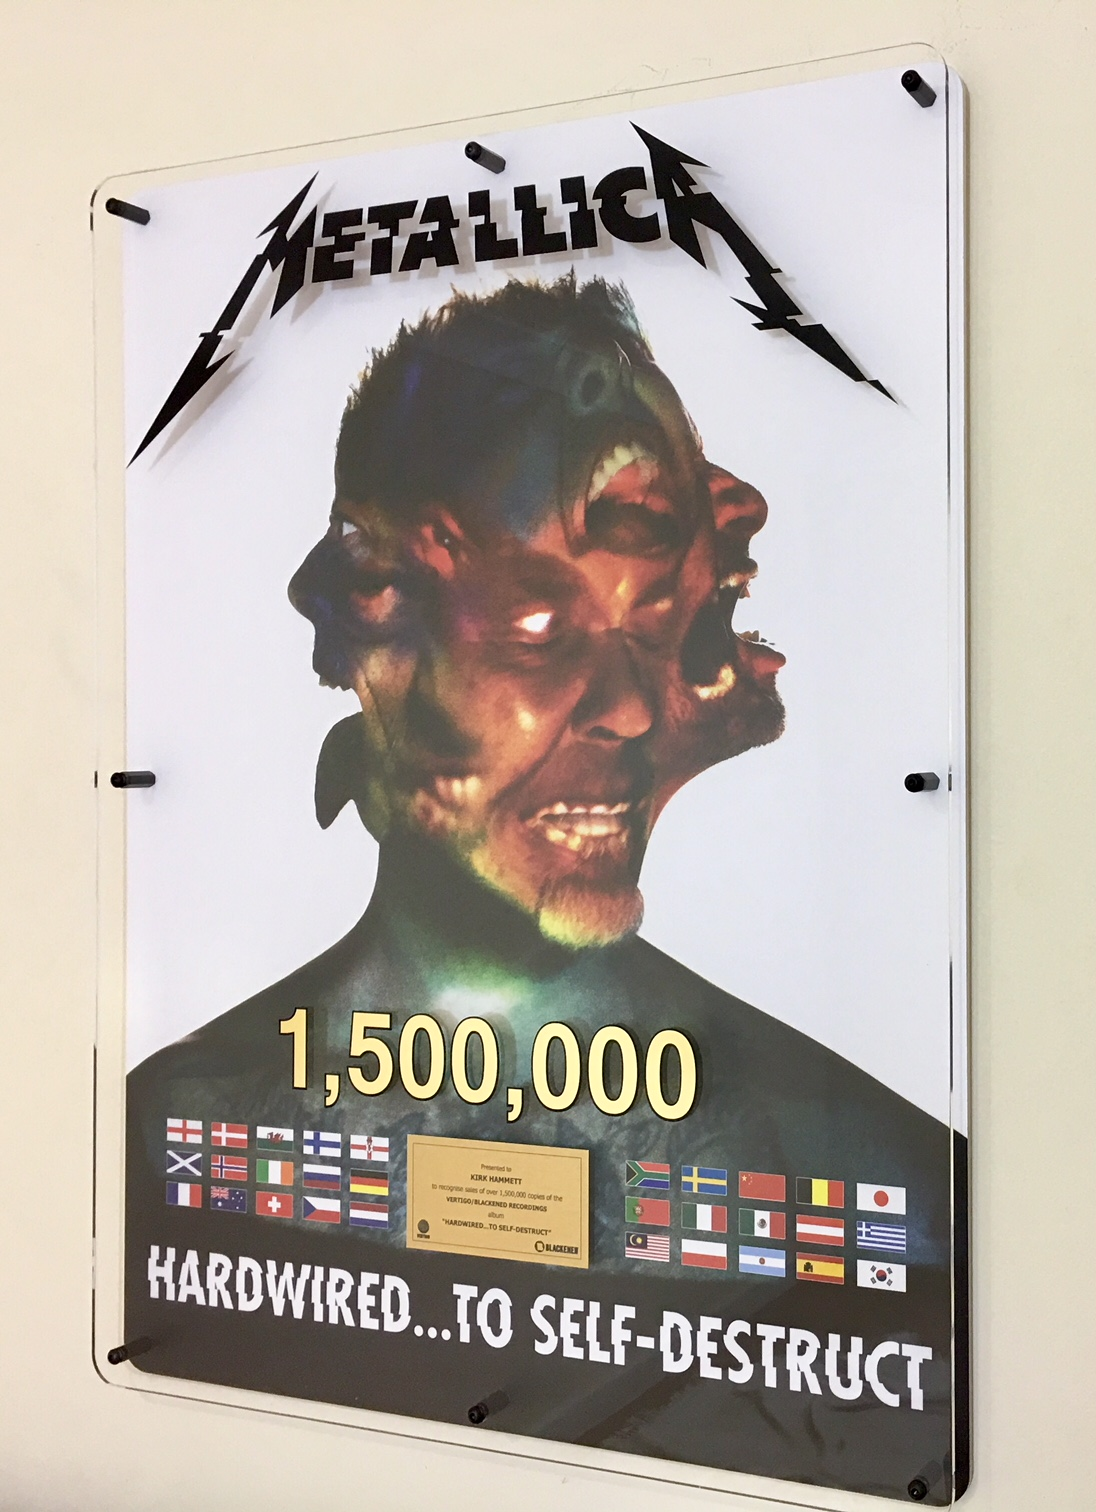 Metallica 600x800mm Acrylic